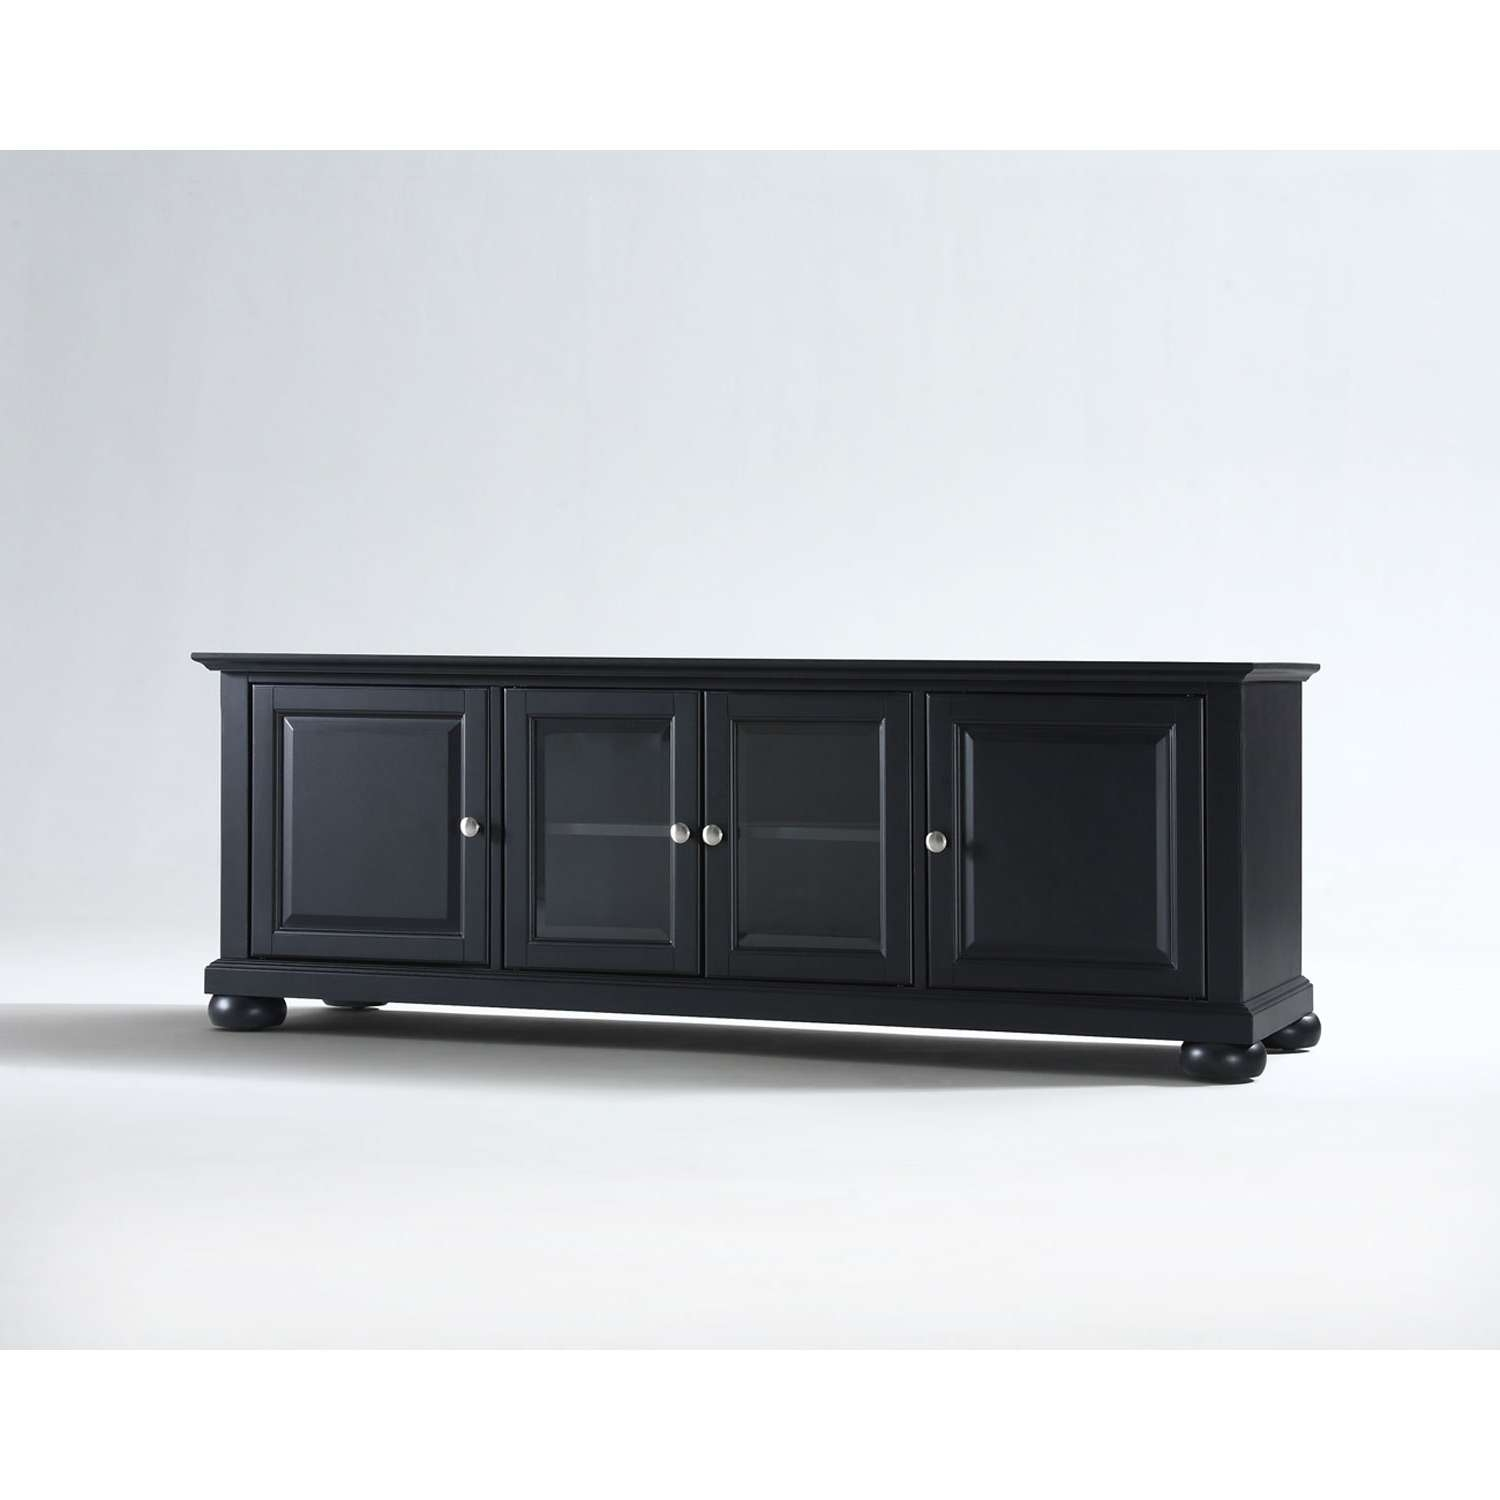 Tv Stands & Cabinets On Sale | Bellacor Pertaining To Long Low Tv Cabinets (View 18 of 20)